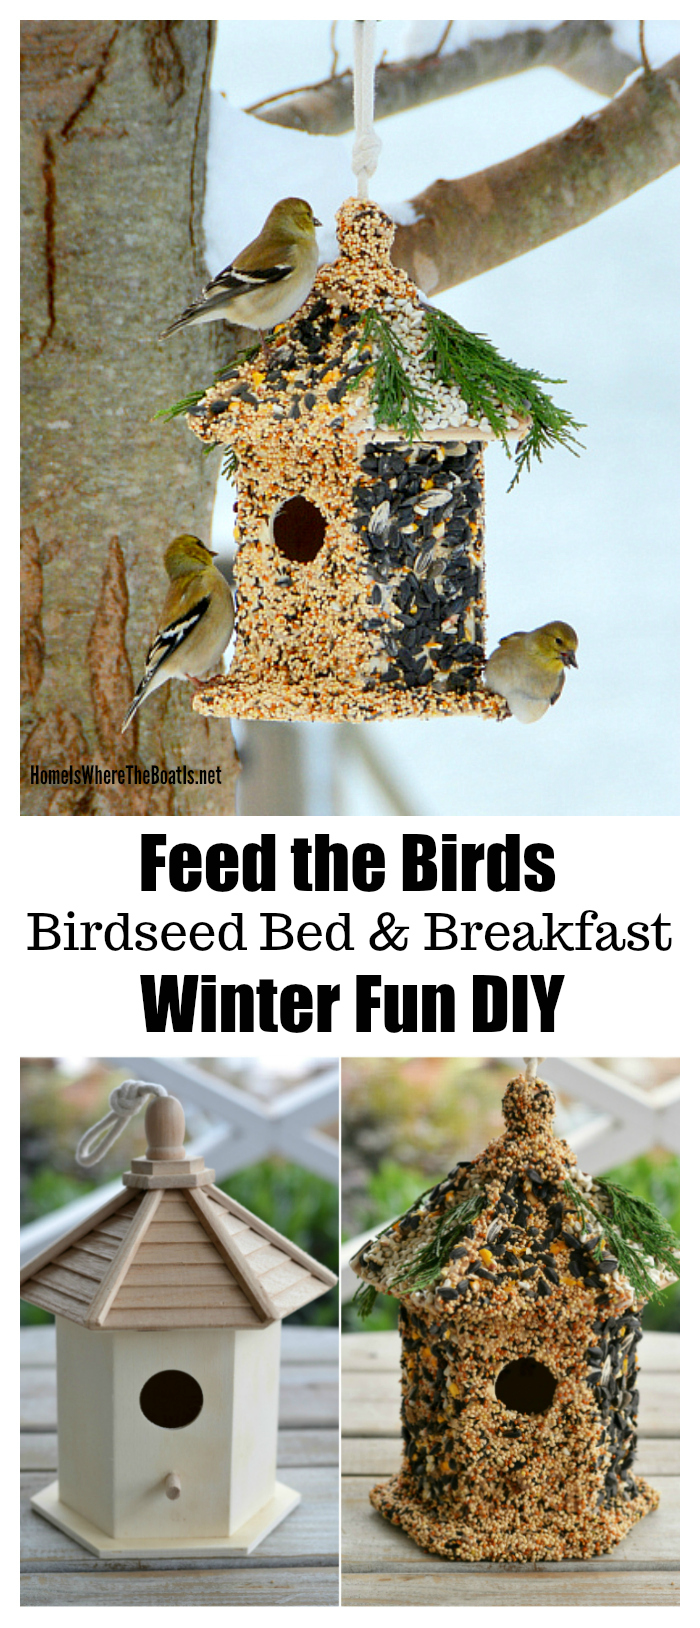 Create a birdseed bed & breakfast for your feathered friends! An easy and fun DIY project with the kids for a snowy or cold winter day | homeiswheretheboatis.net #winterDIY #birdfeeder #birdhouse